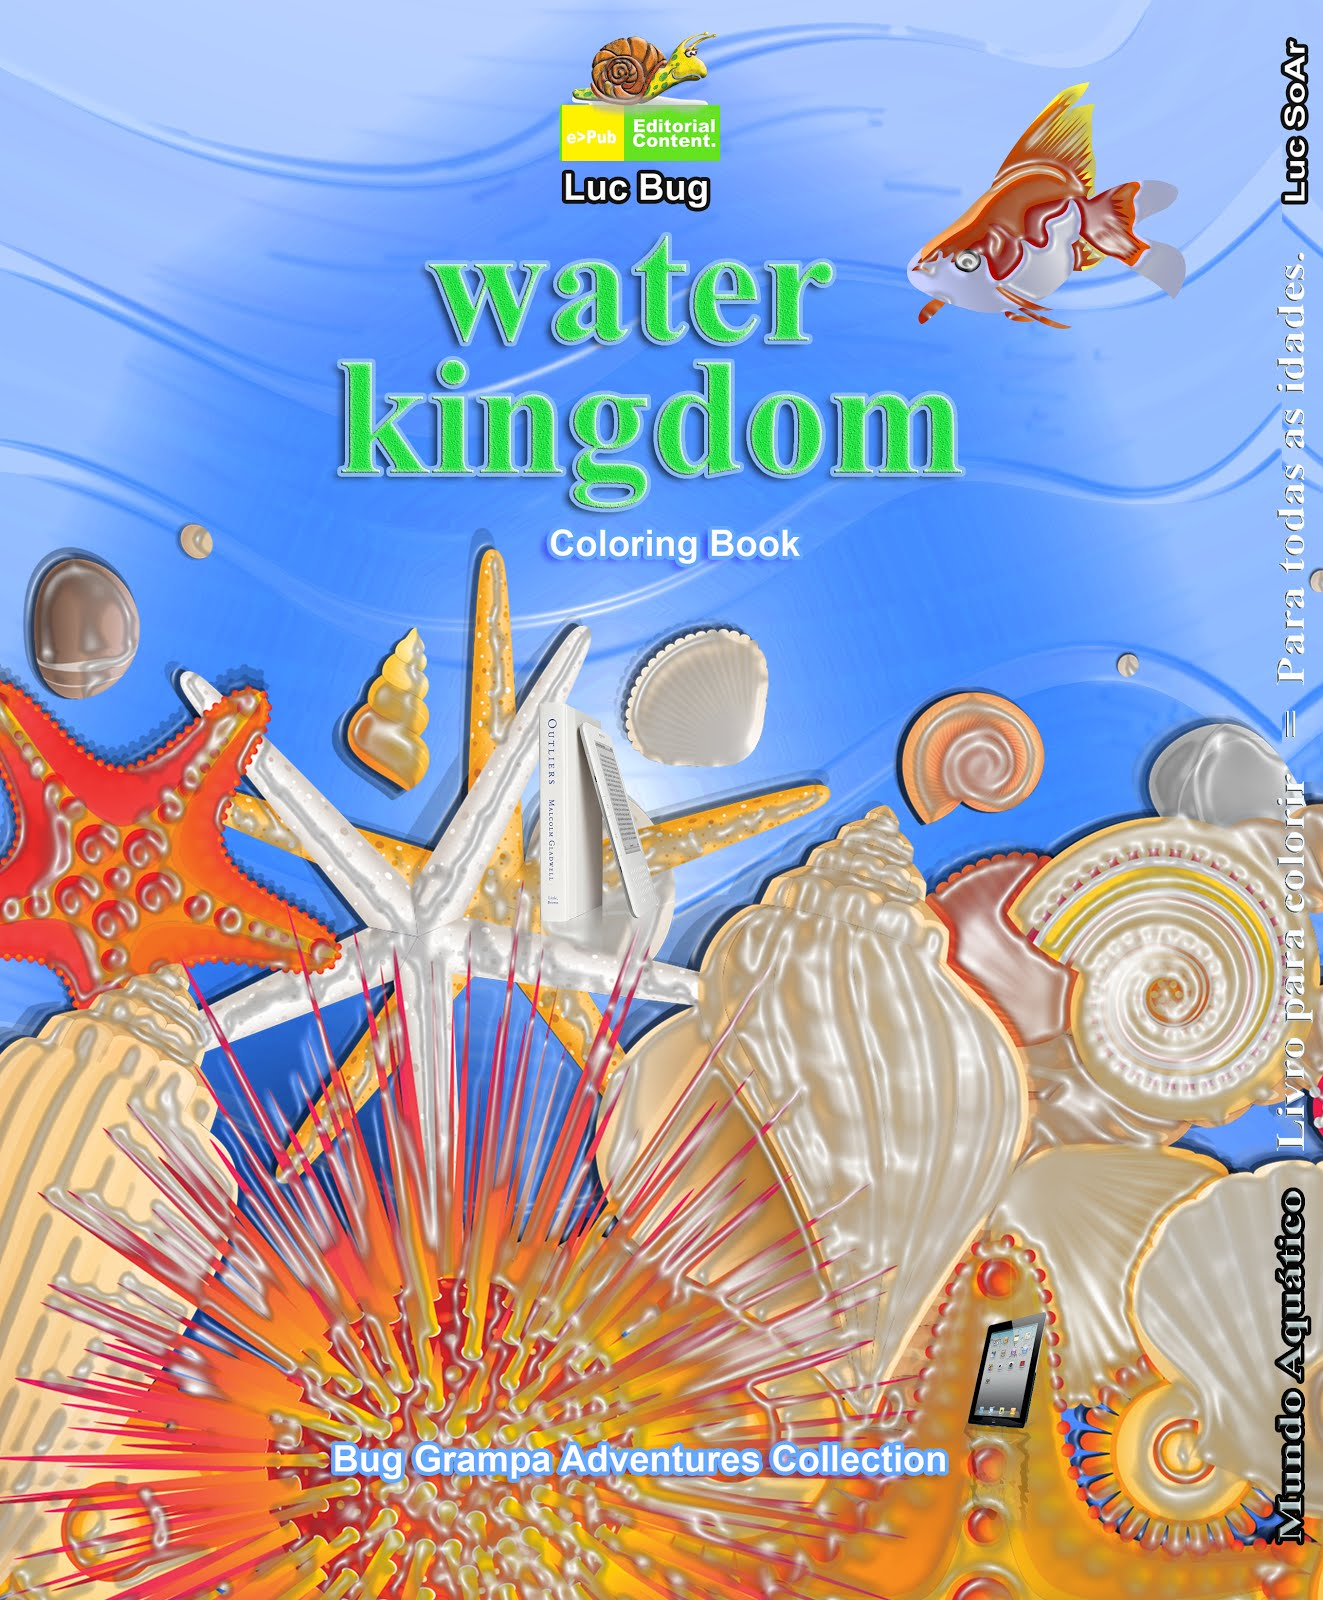 wATeR kiNGDoN